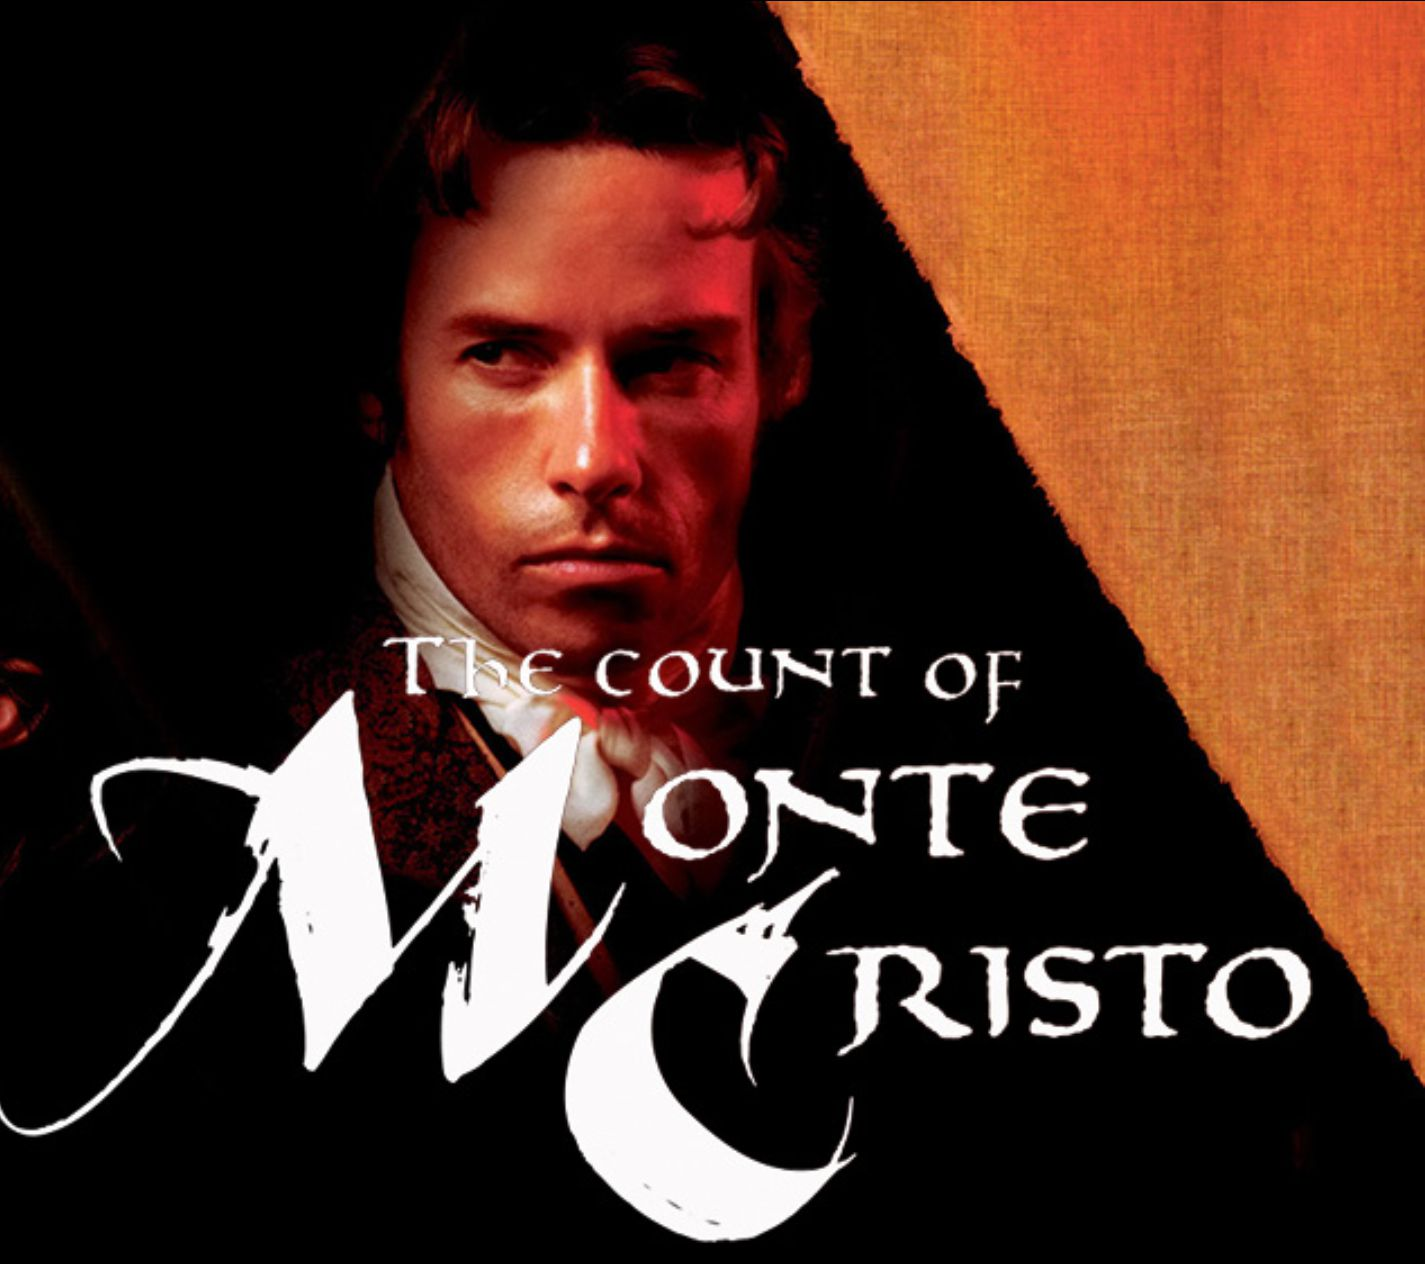 the count of monte cristo 2002 usa brrip 720p 1011 mb google the count of monte cristo 2002 usa brrip 720p 1011 mb google drive